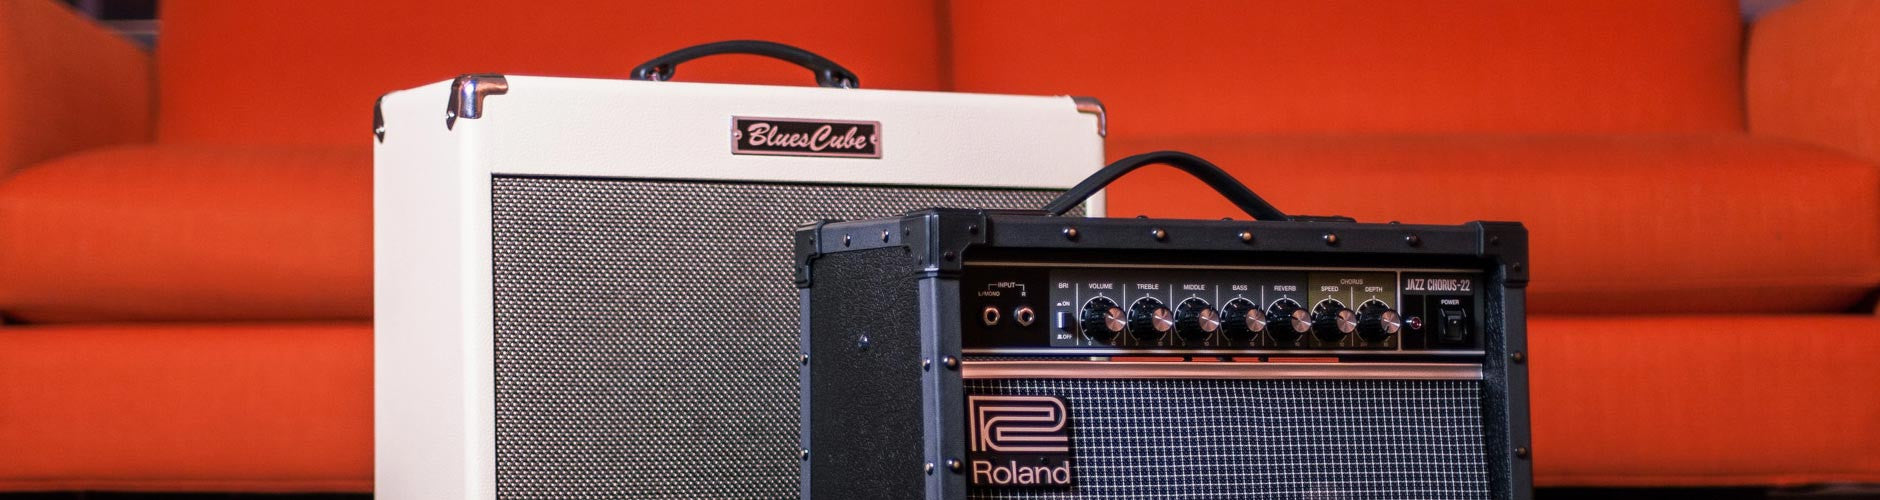 Roland Amps At The Music Zoo